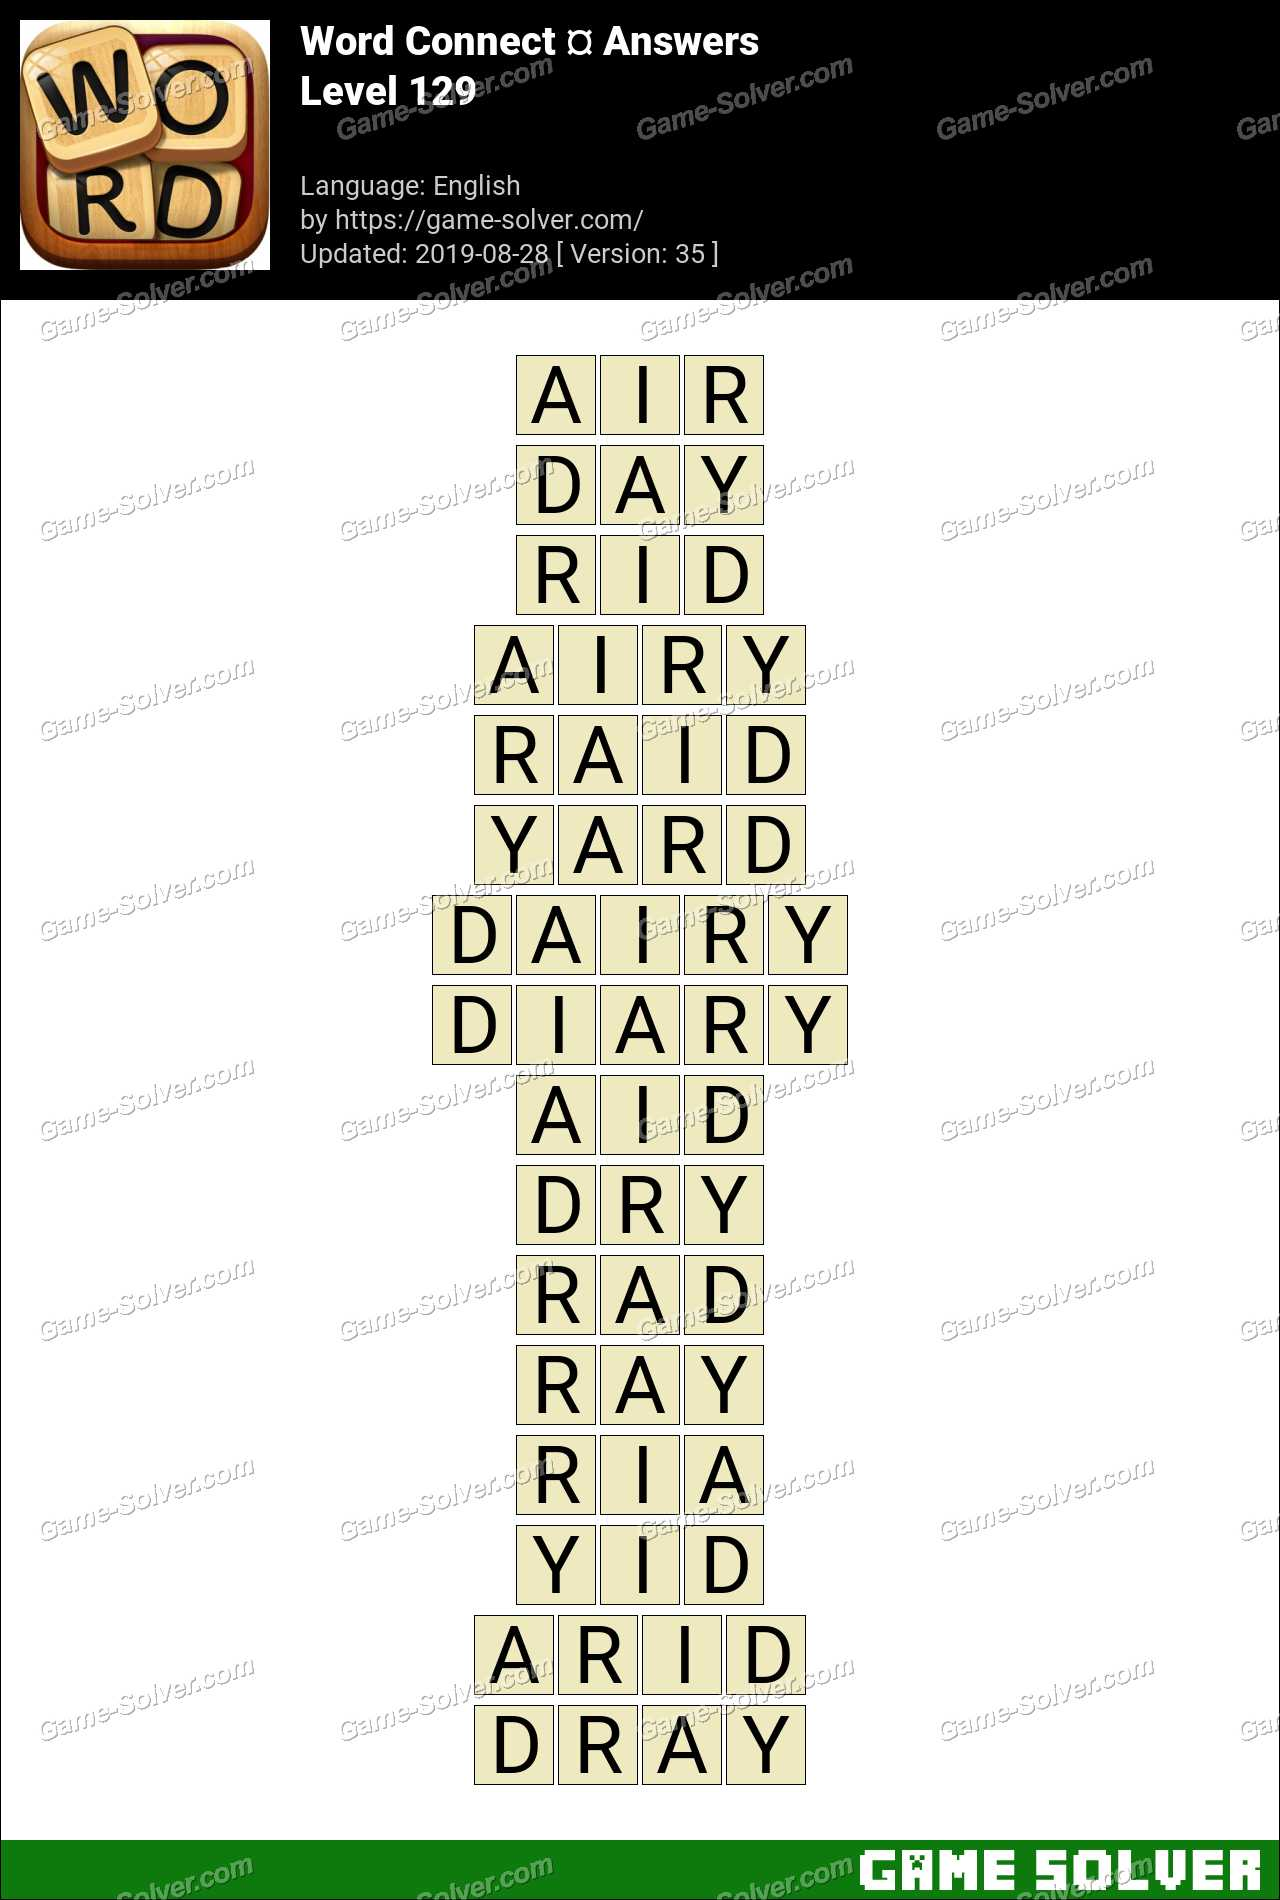 Word Connect Level 129 Answers